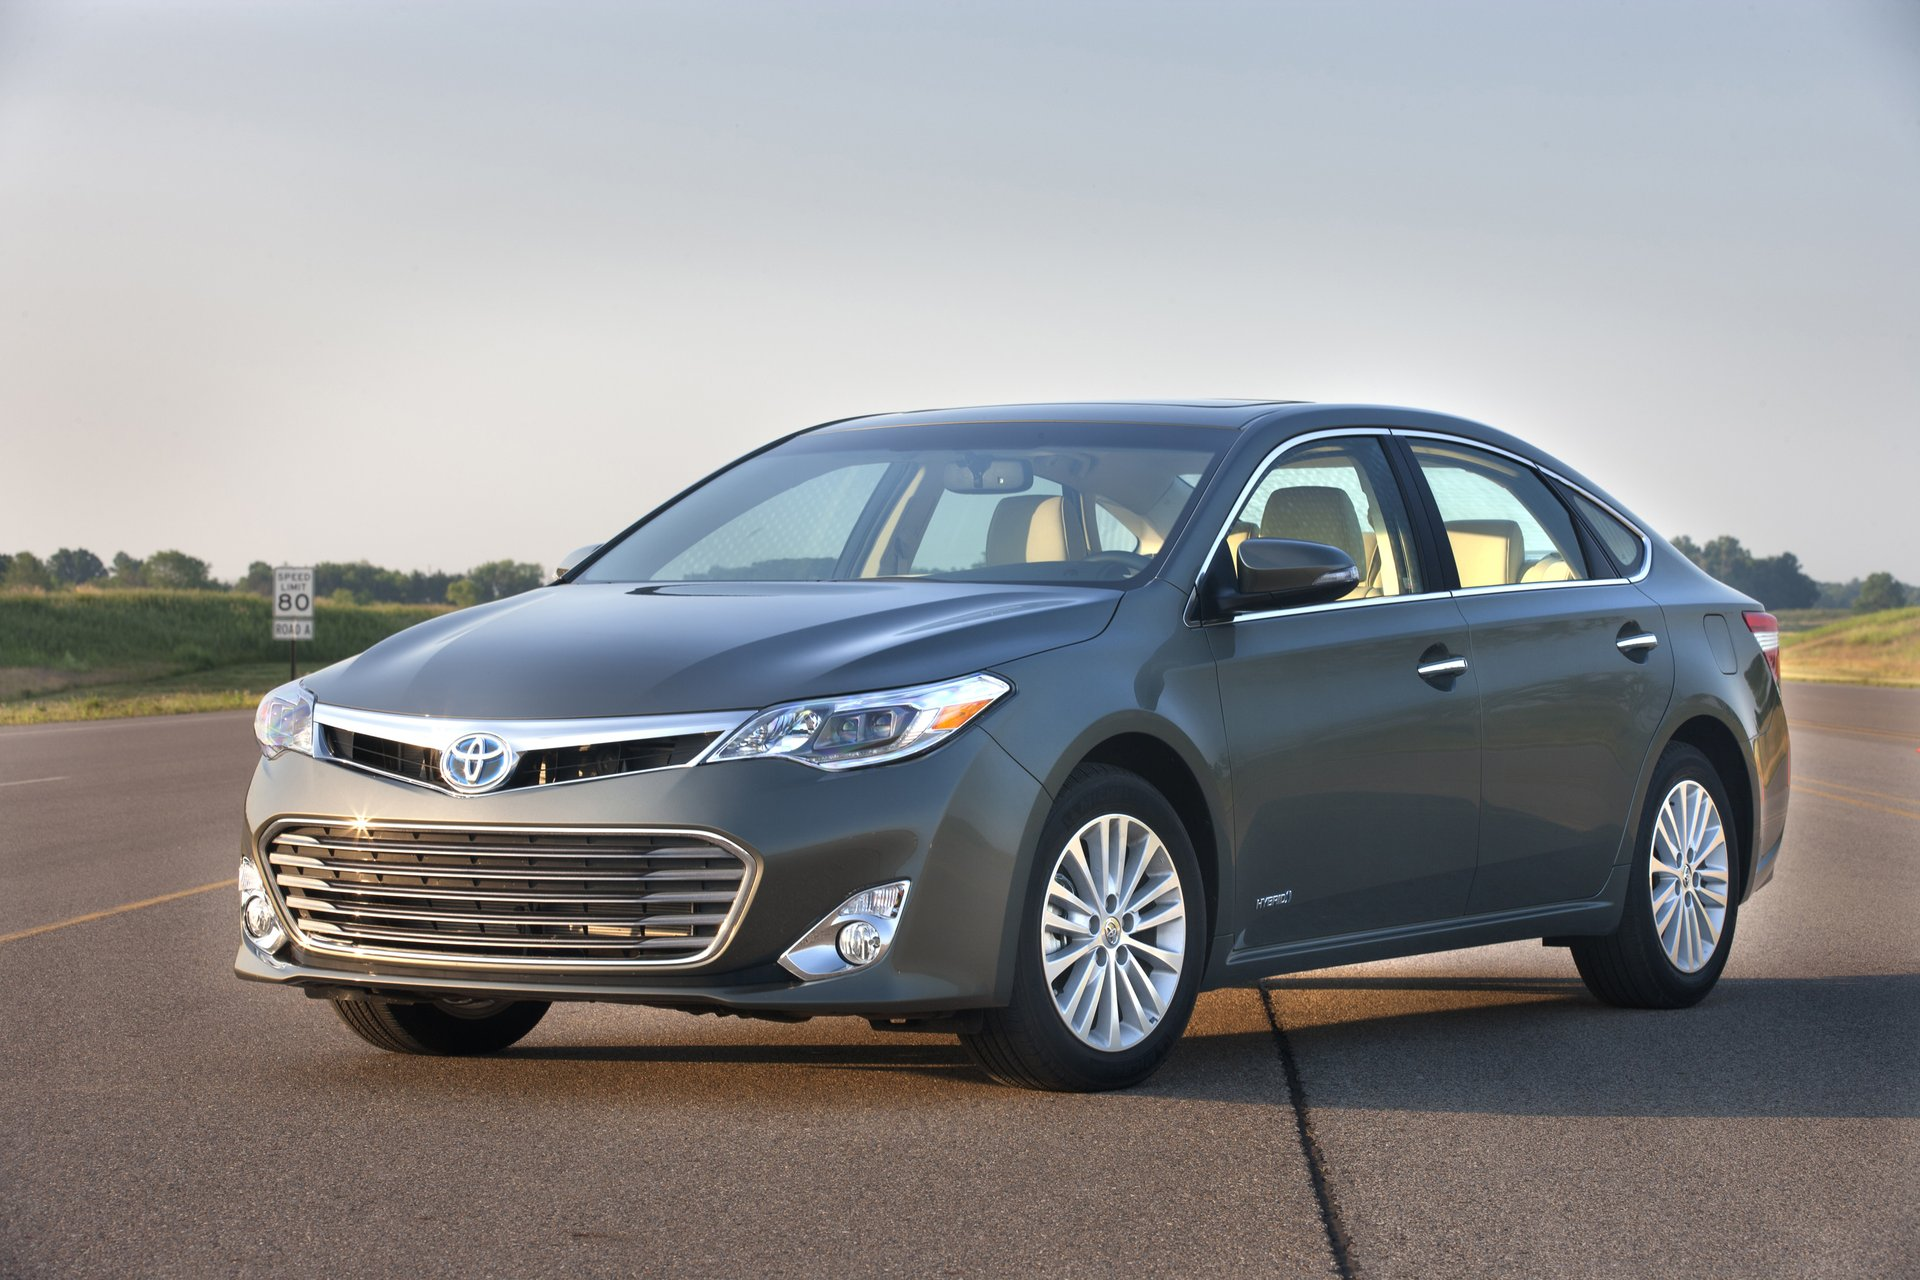 toyota avalon hybrid discounts large 40 mpg sedan discounts rise. Black Bedroom Furniture Sets. Home Design Ideas